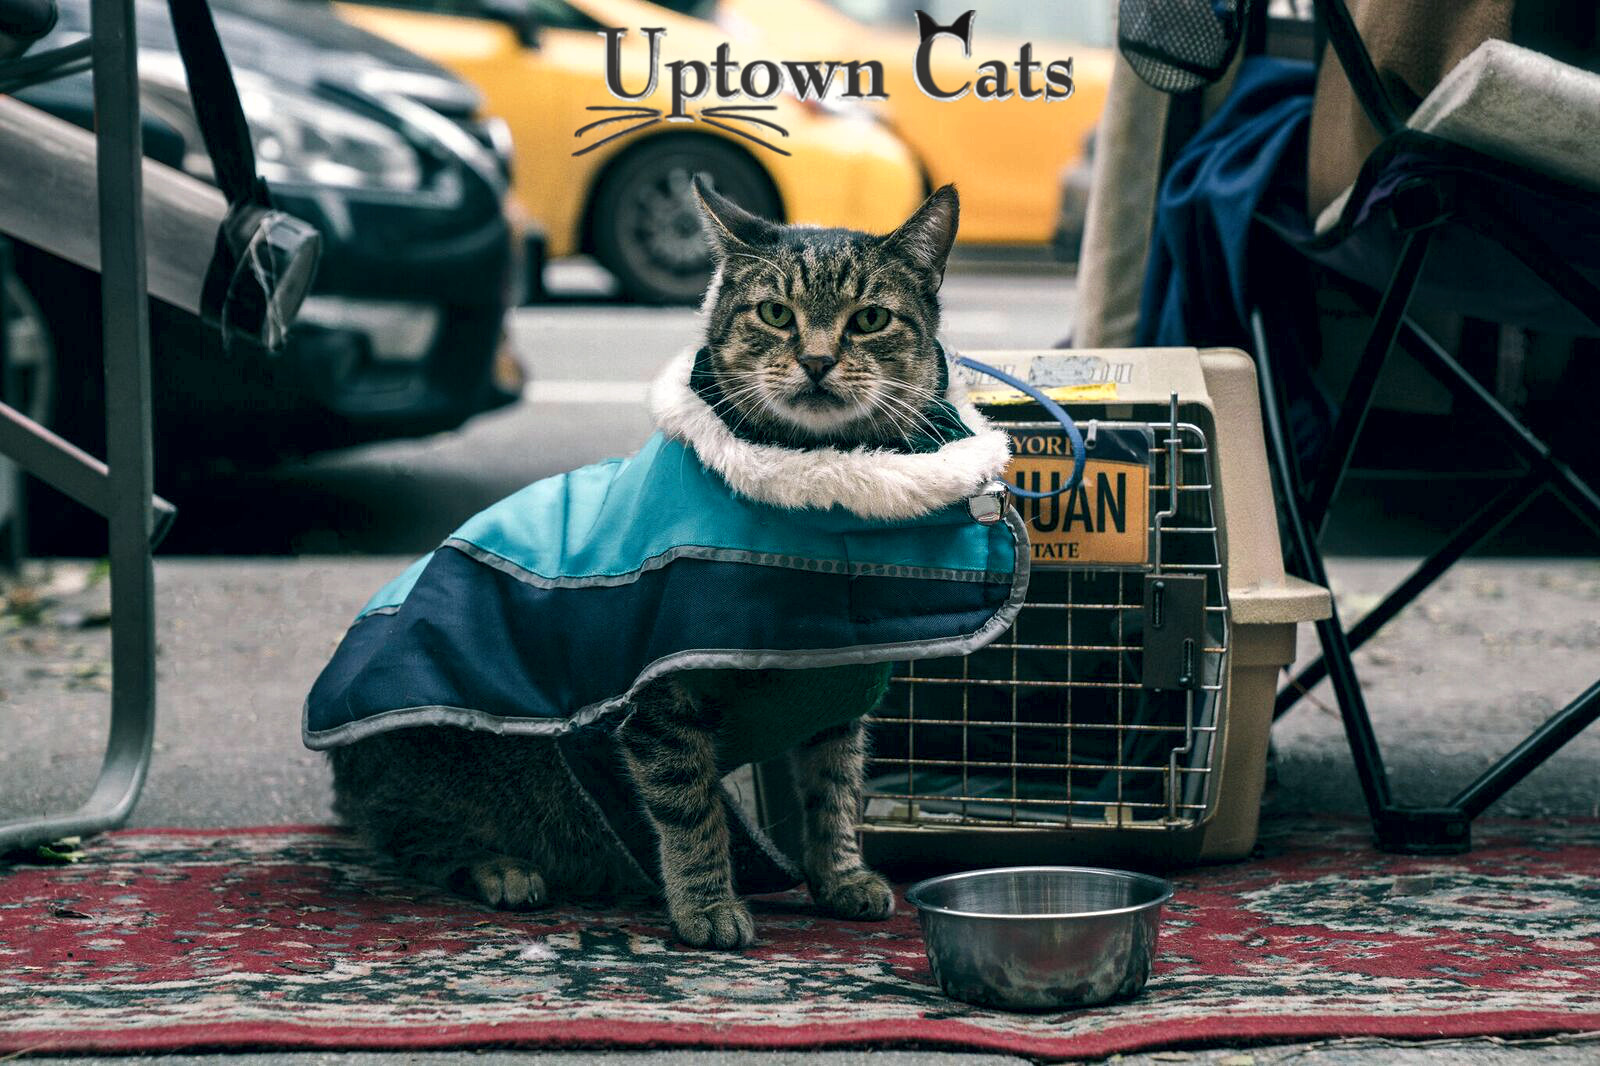 Pets for Adoption at Uptown Cats, in New York, NY | Petfinder